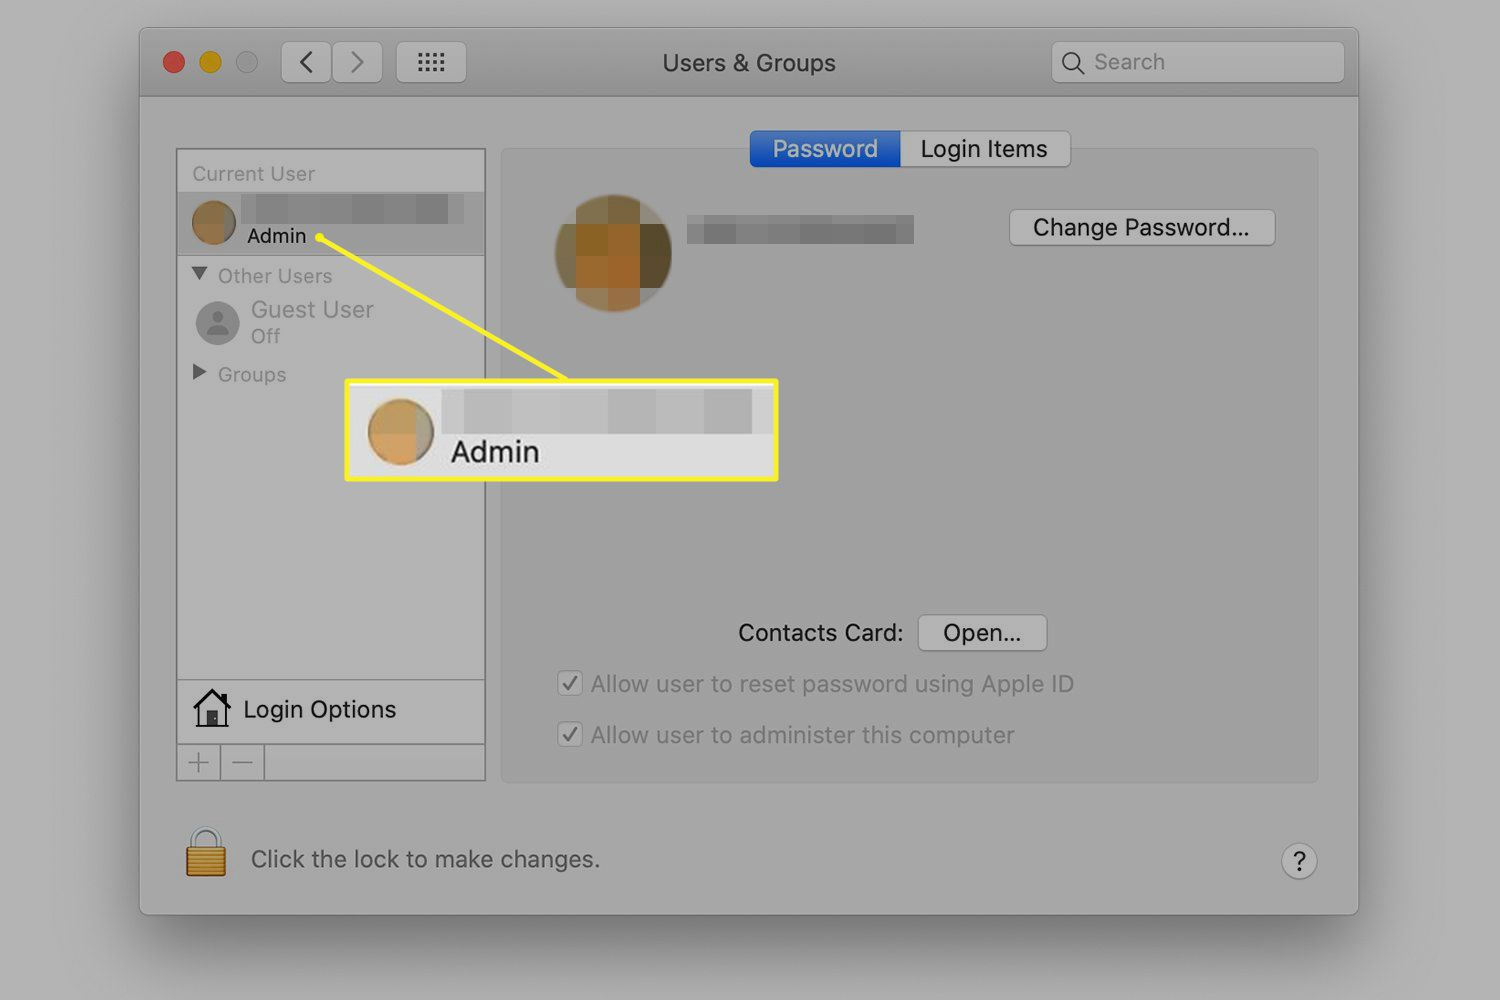 Users & Groups preferences with account selected